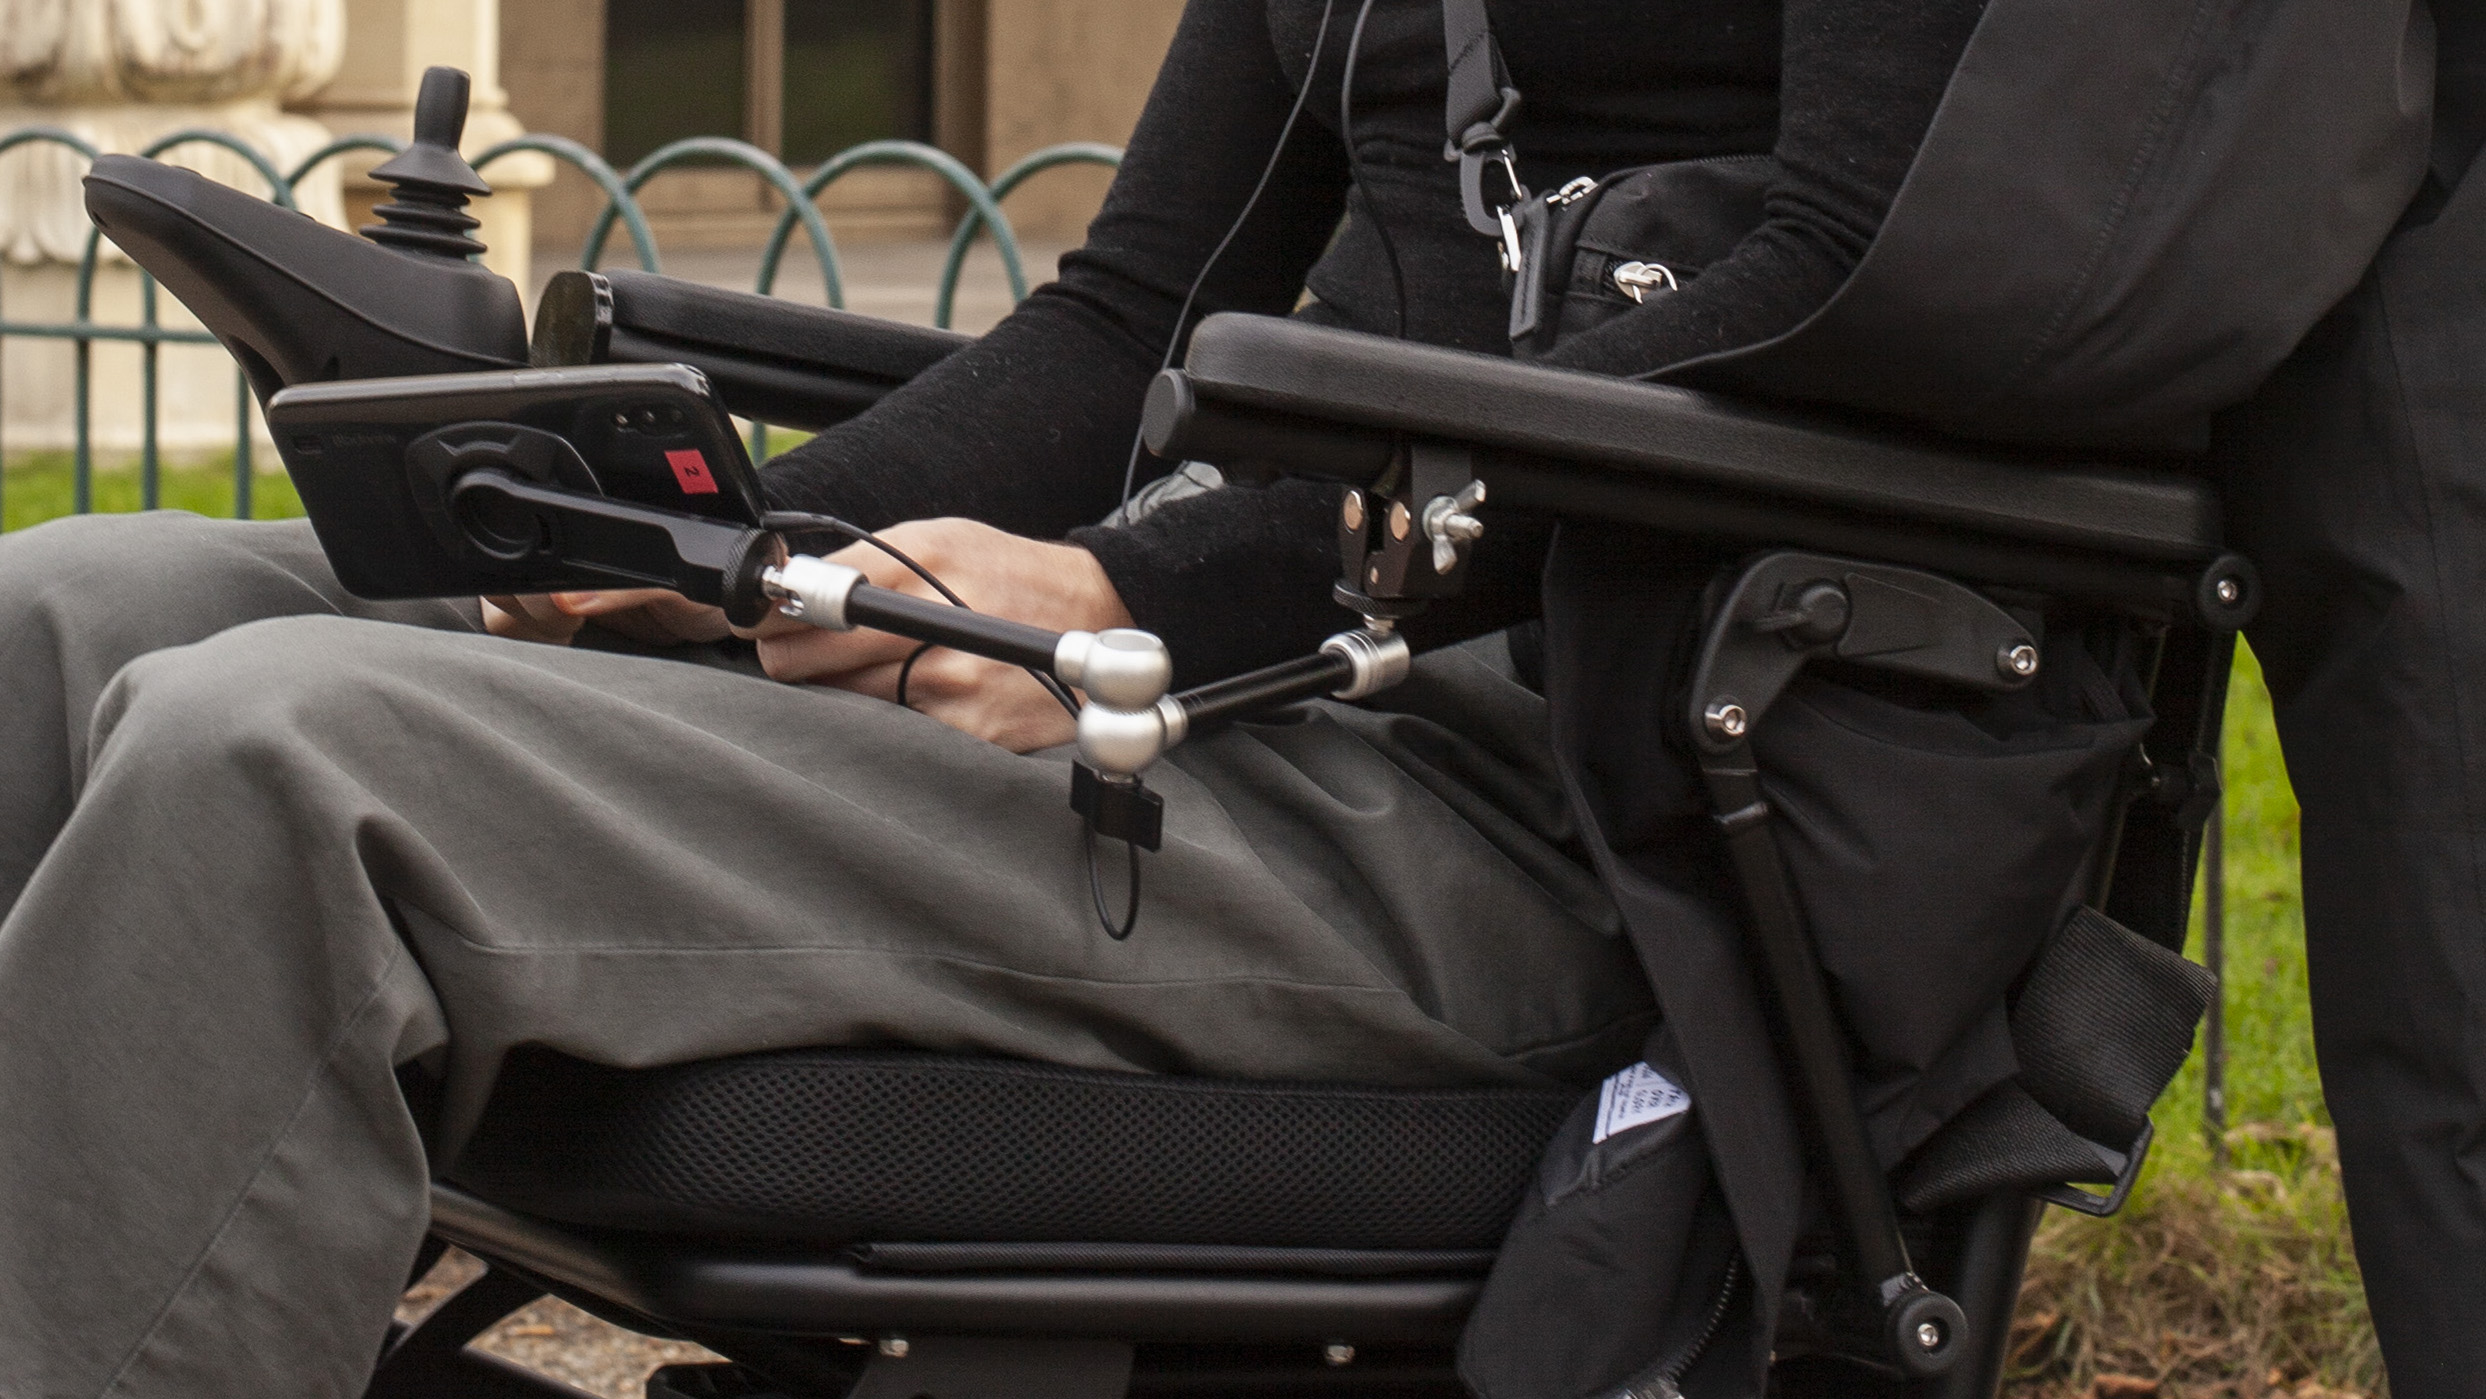 A white person in an electric wheelchair with a phone mounted to the chair